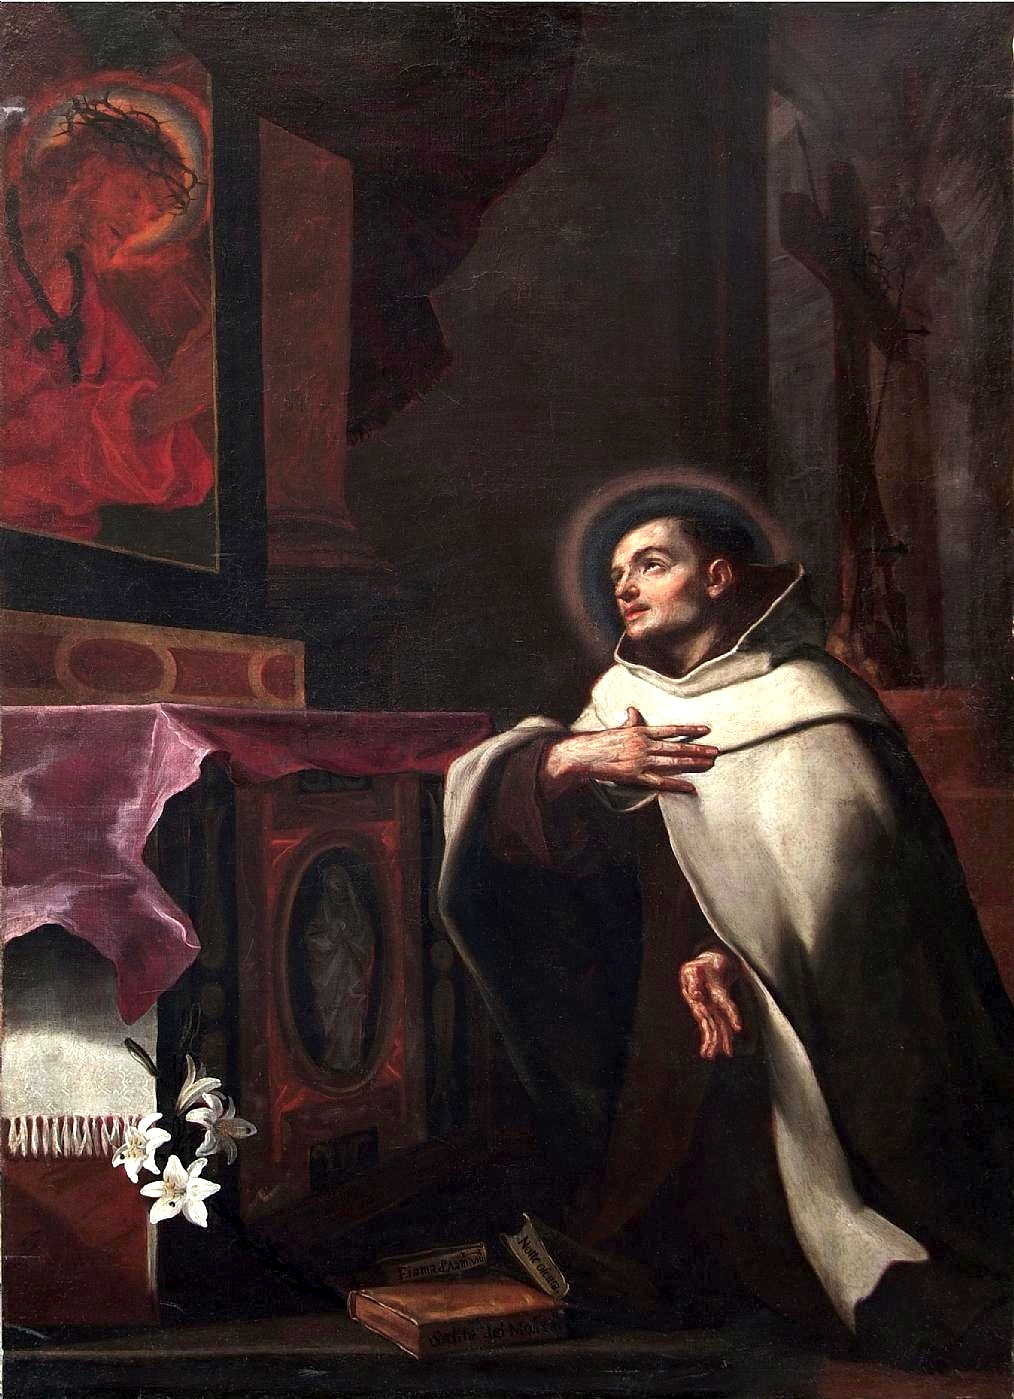 Fear Not the Night: Saint John of the Cross and Spiritual Darkness